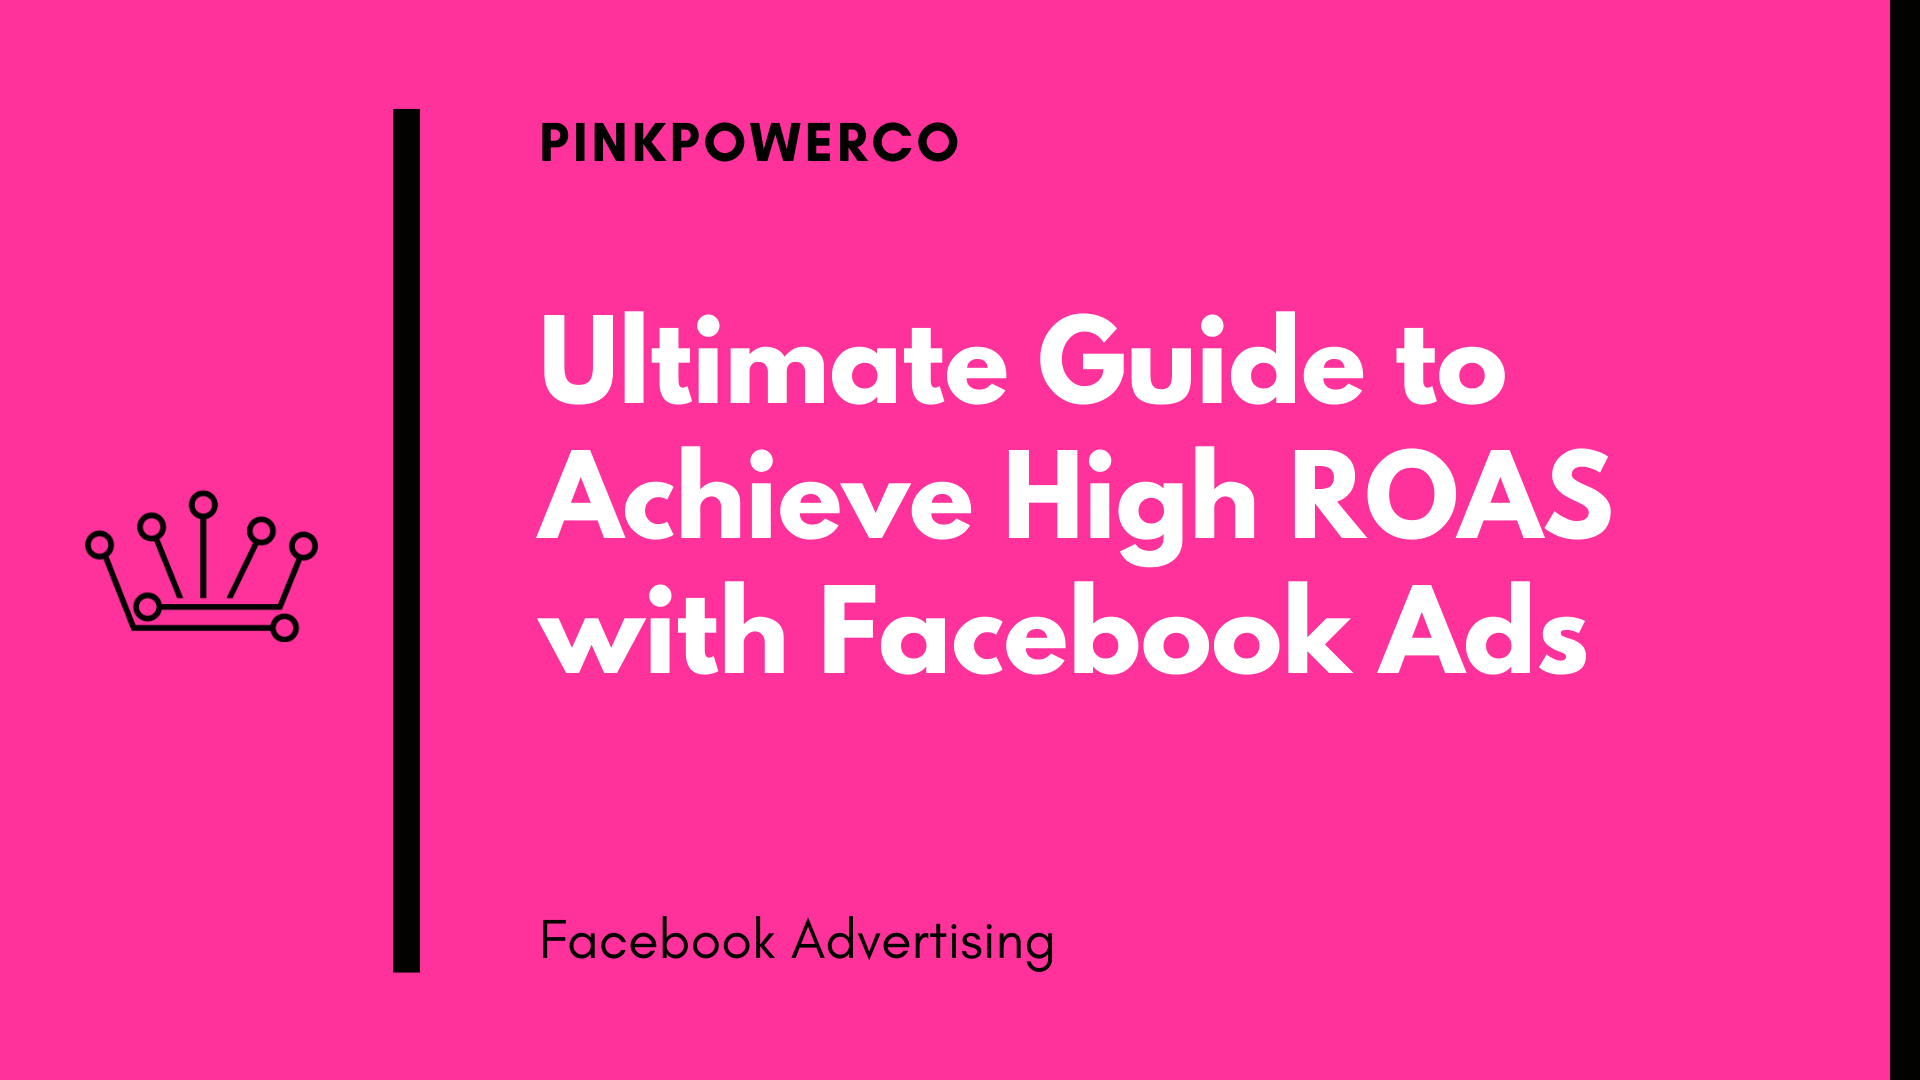 Free Download: Get High ROAS with Facebook Ads